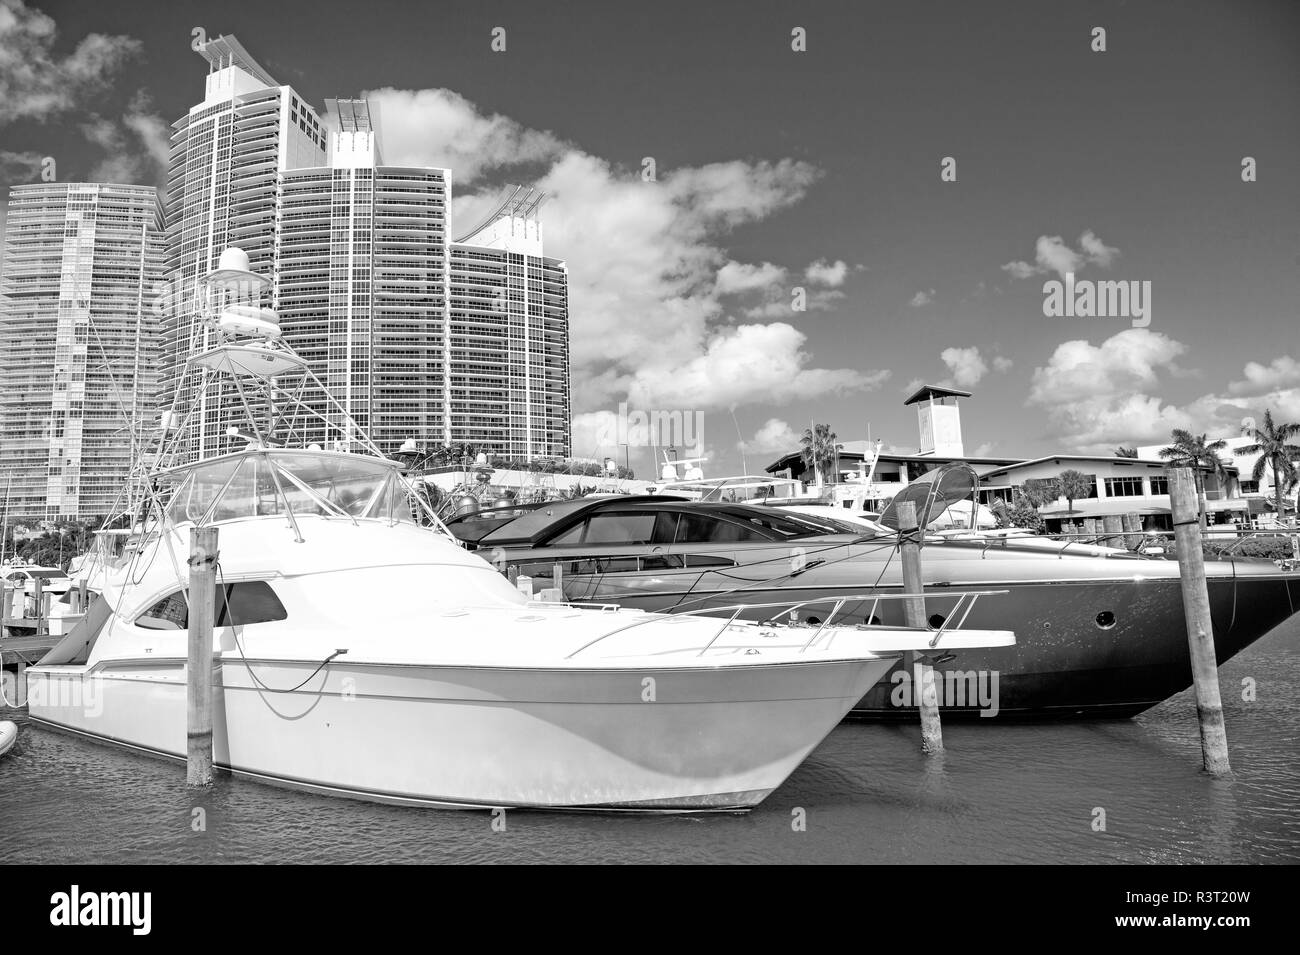 View of luxurious boats and yacht docked in a Miami Beach Marina Stock Photo